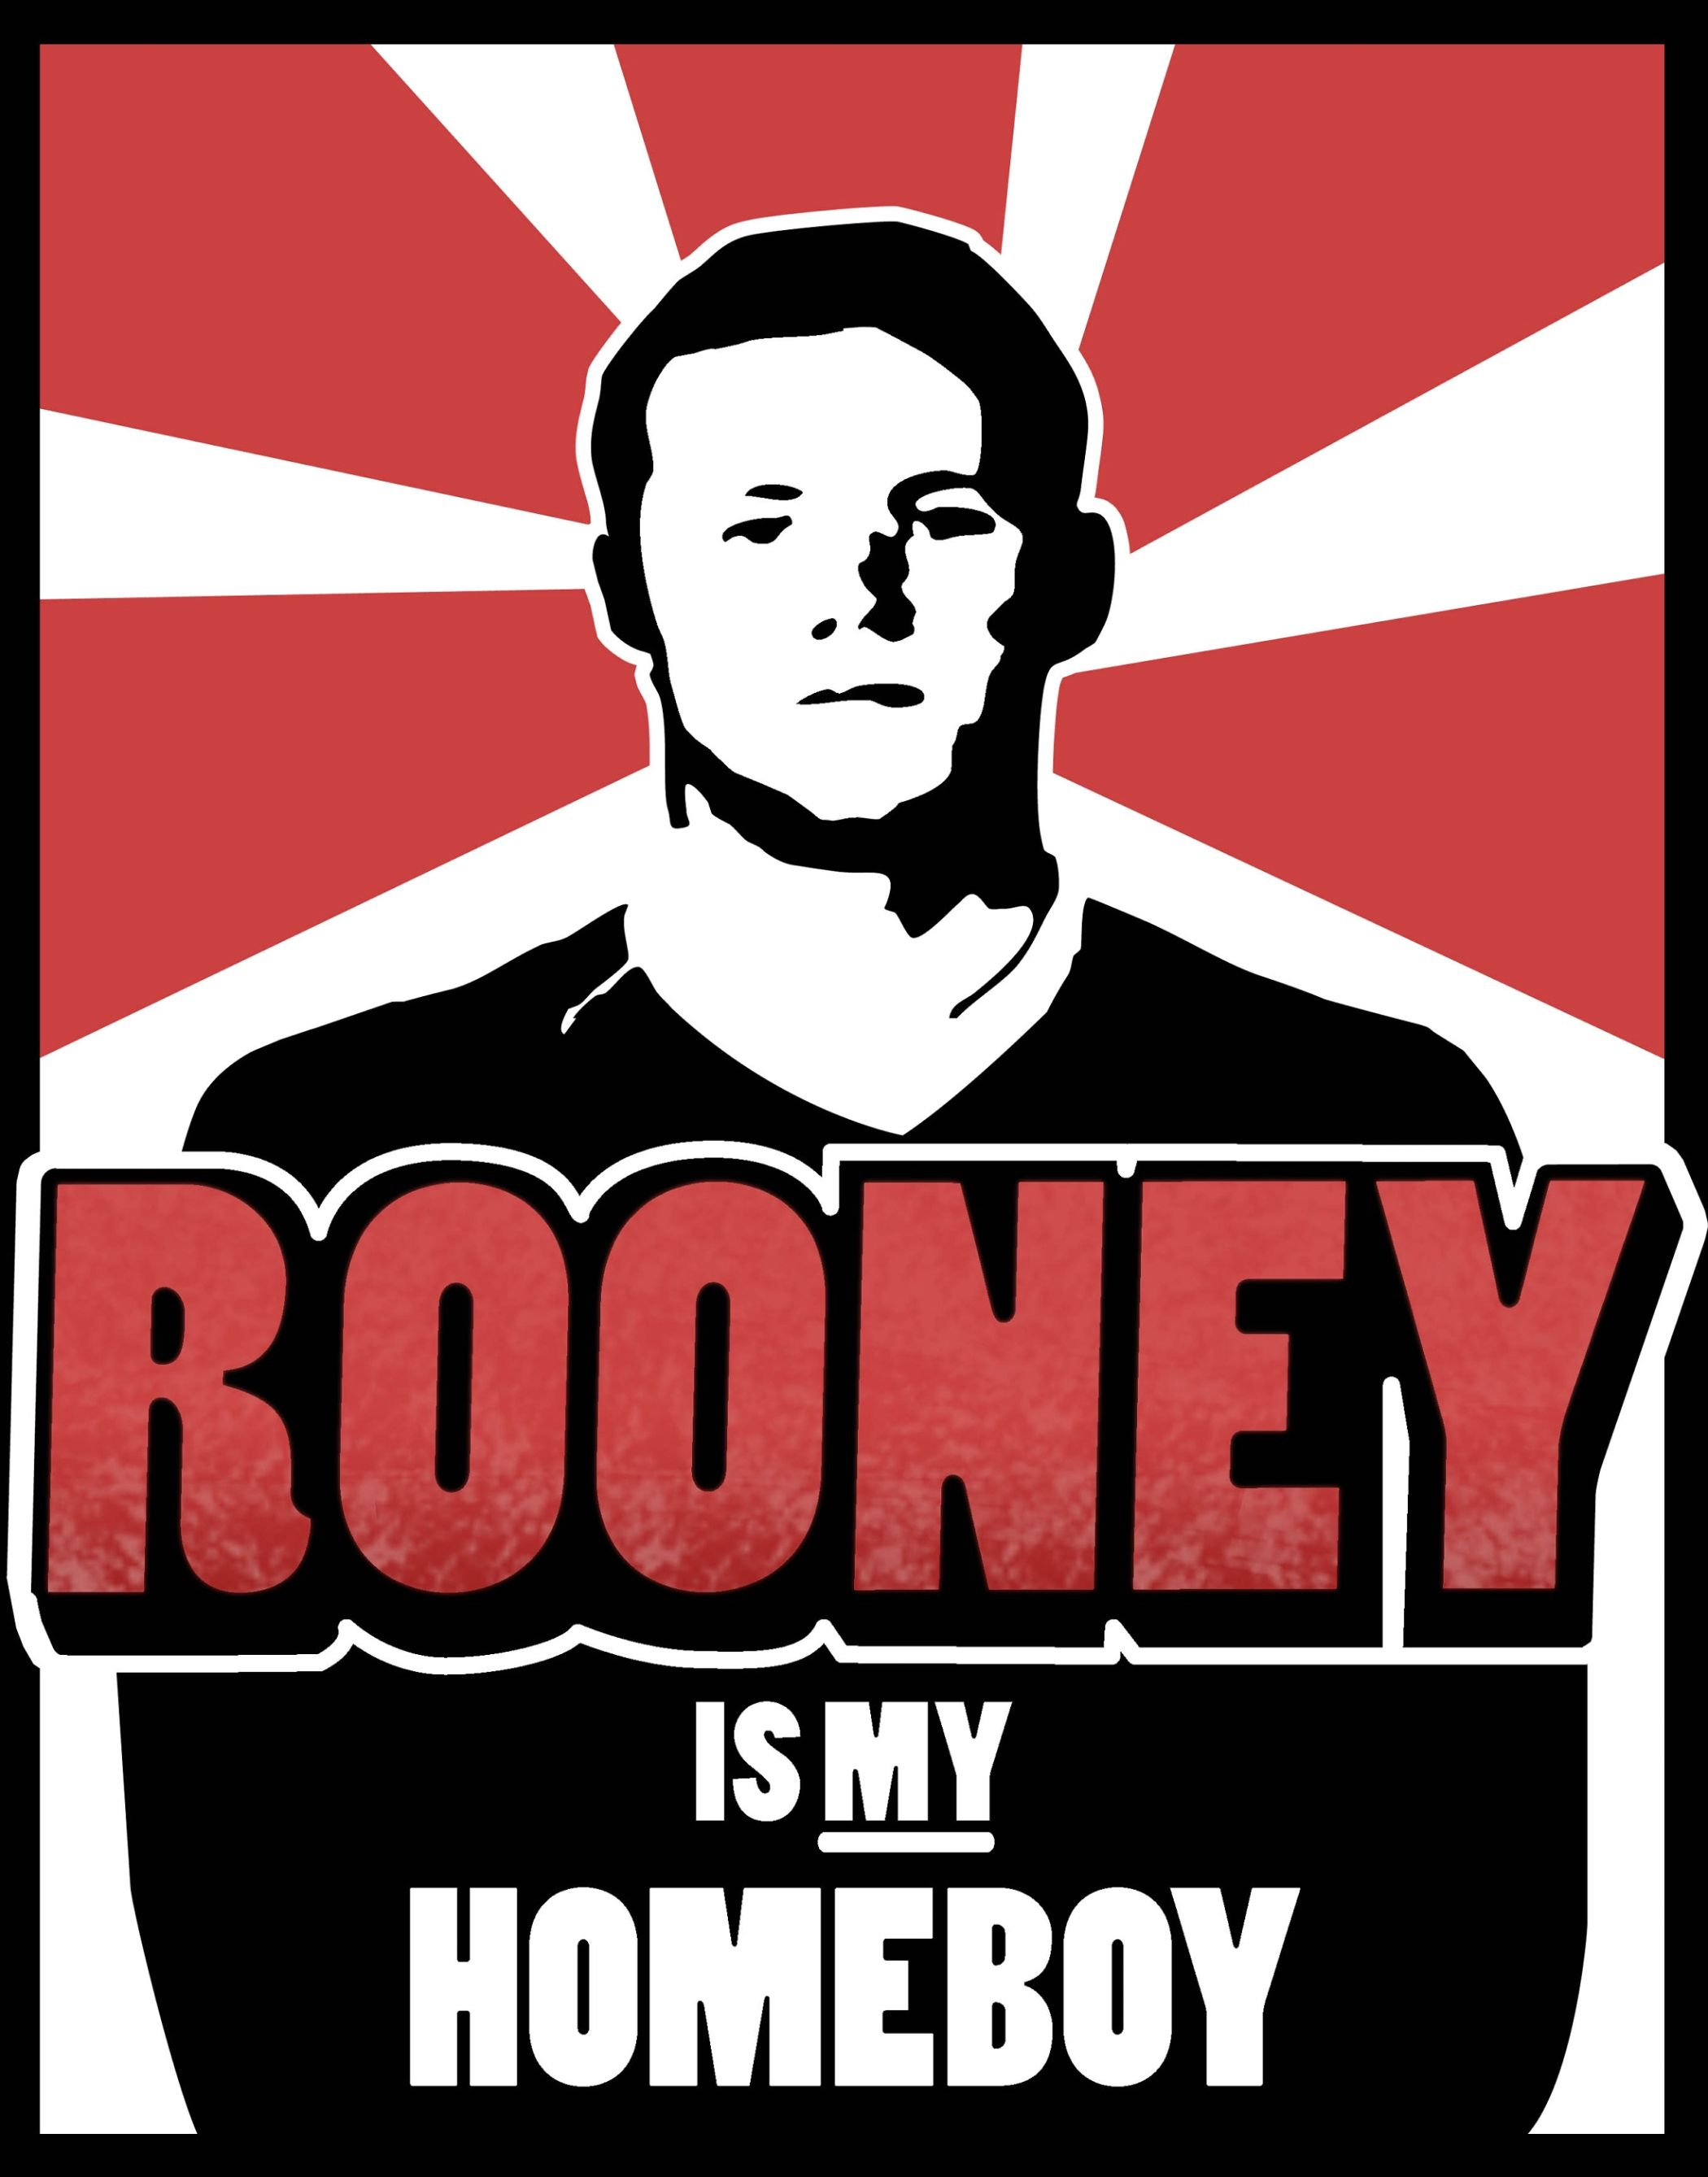 Just In Time For Rooney's Return…